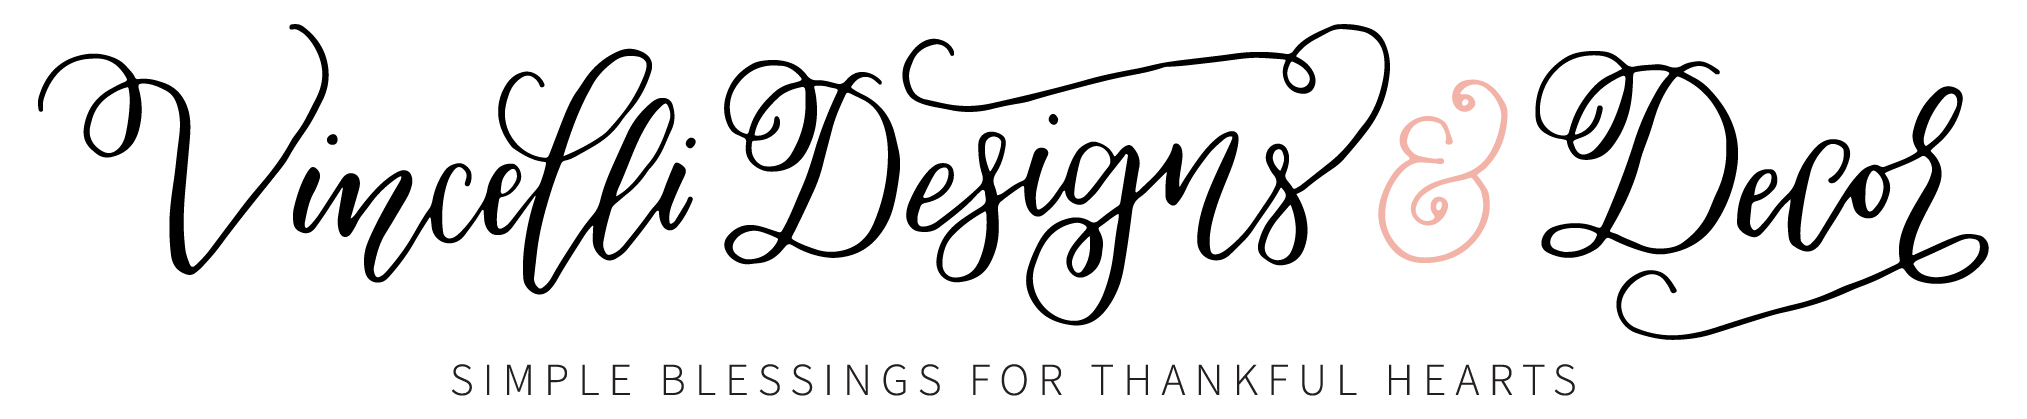 Vincelli Designs & Decor